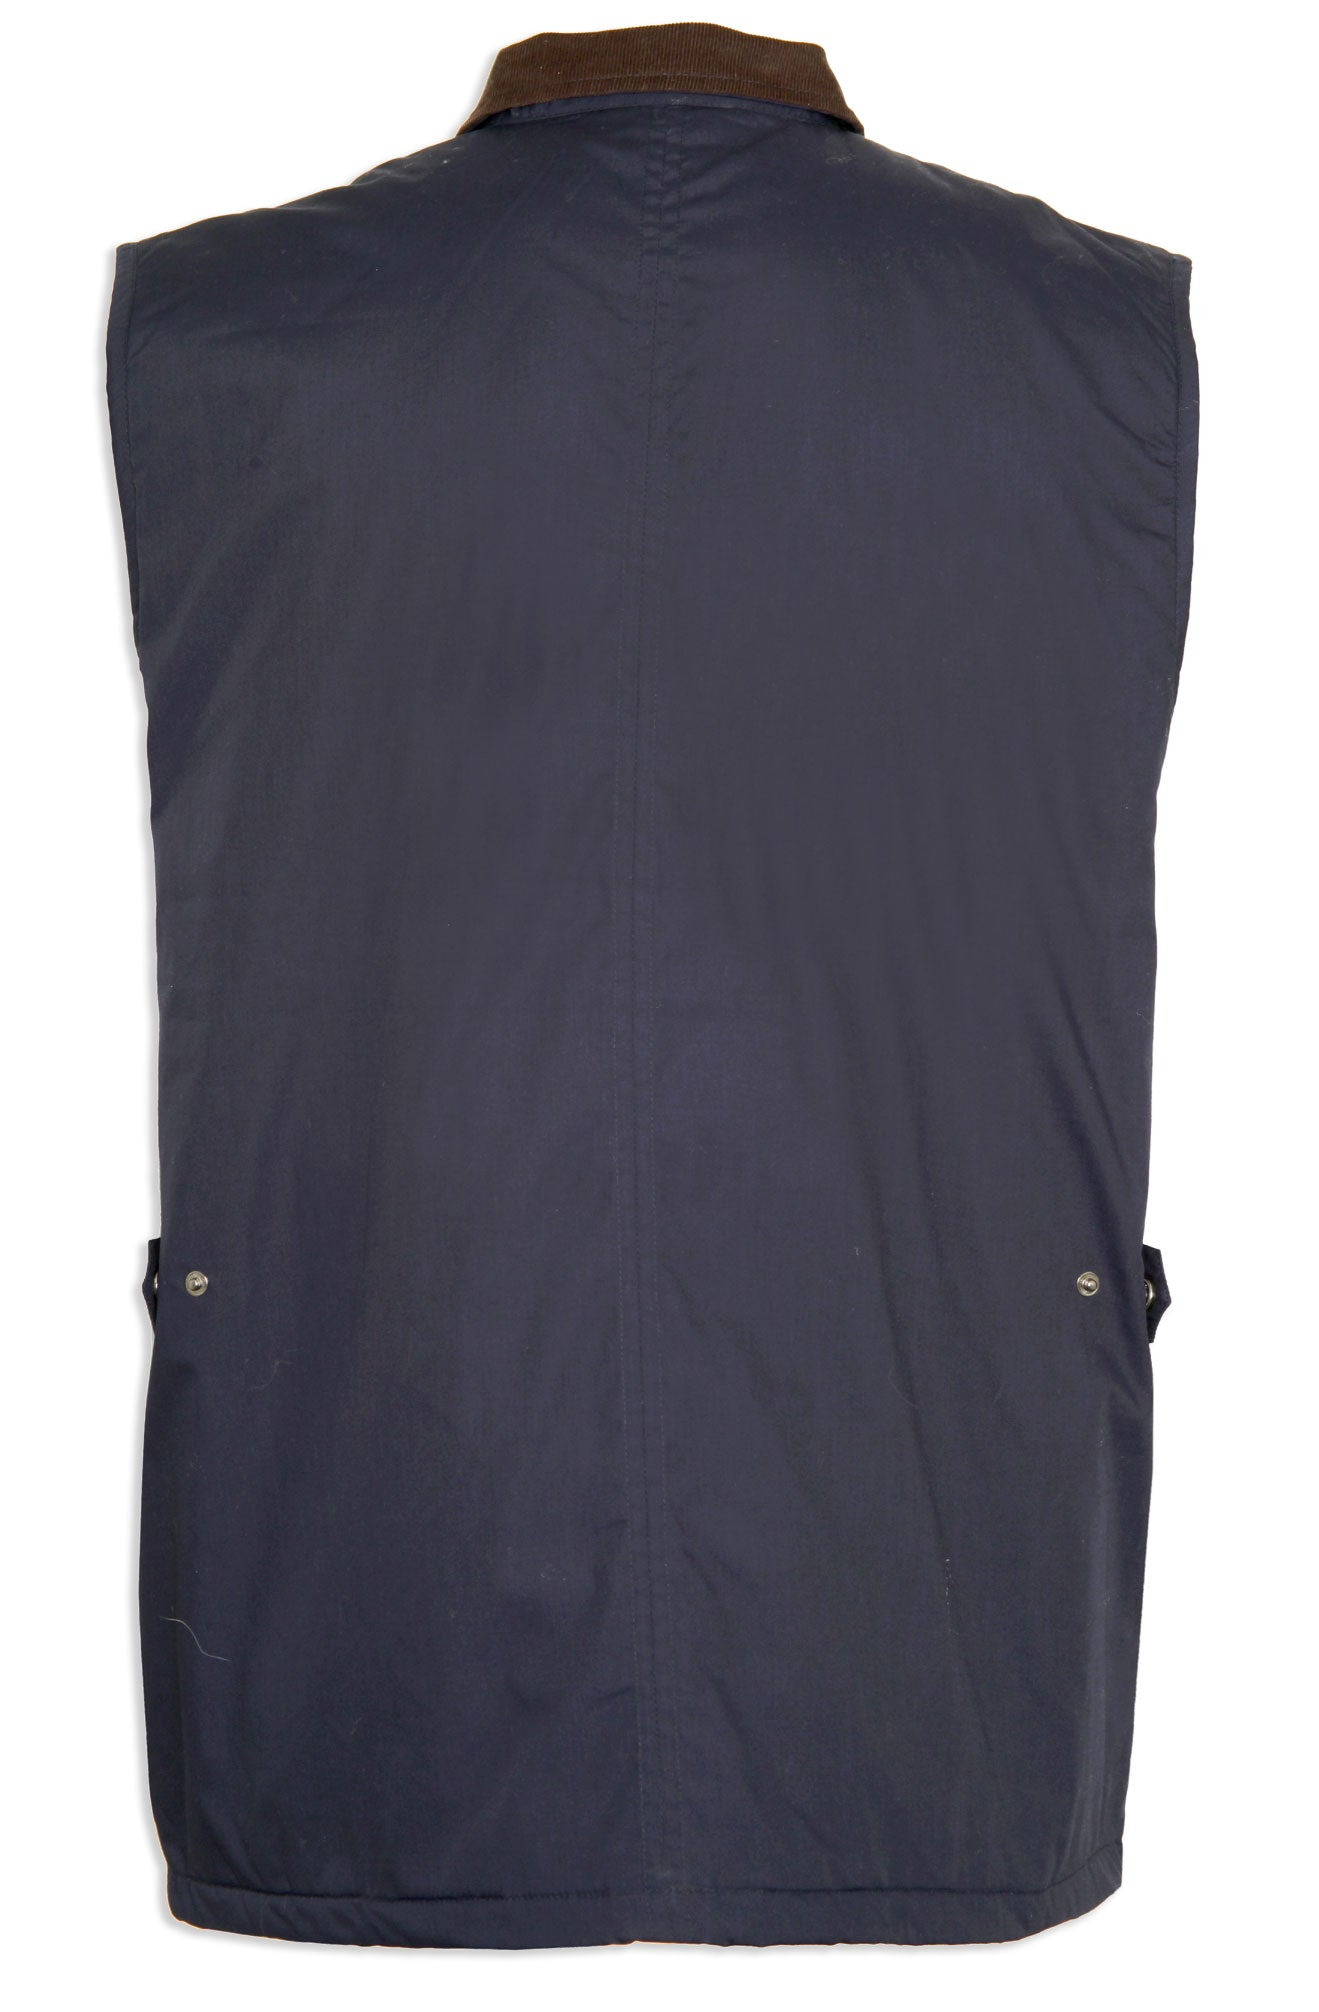 navy rear view navy Silverdale Multi Pocket Waistcoat from Champion Outdoor